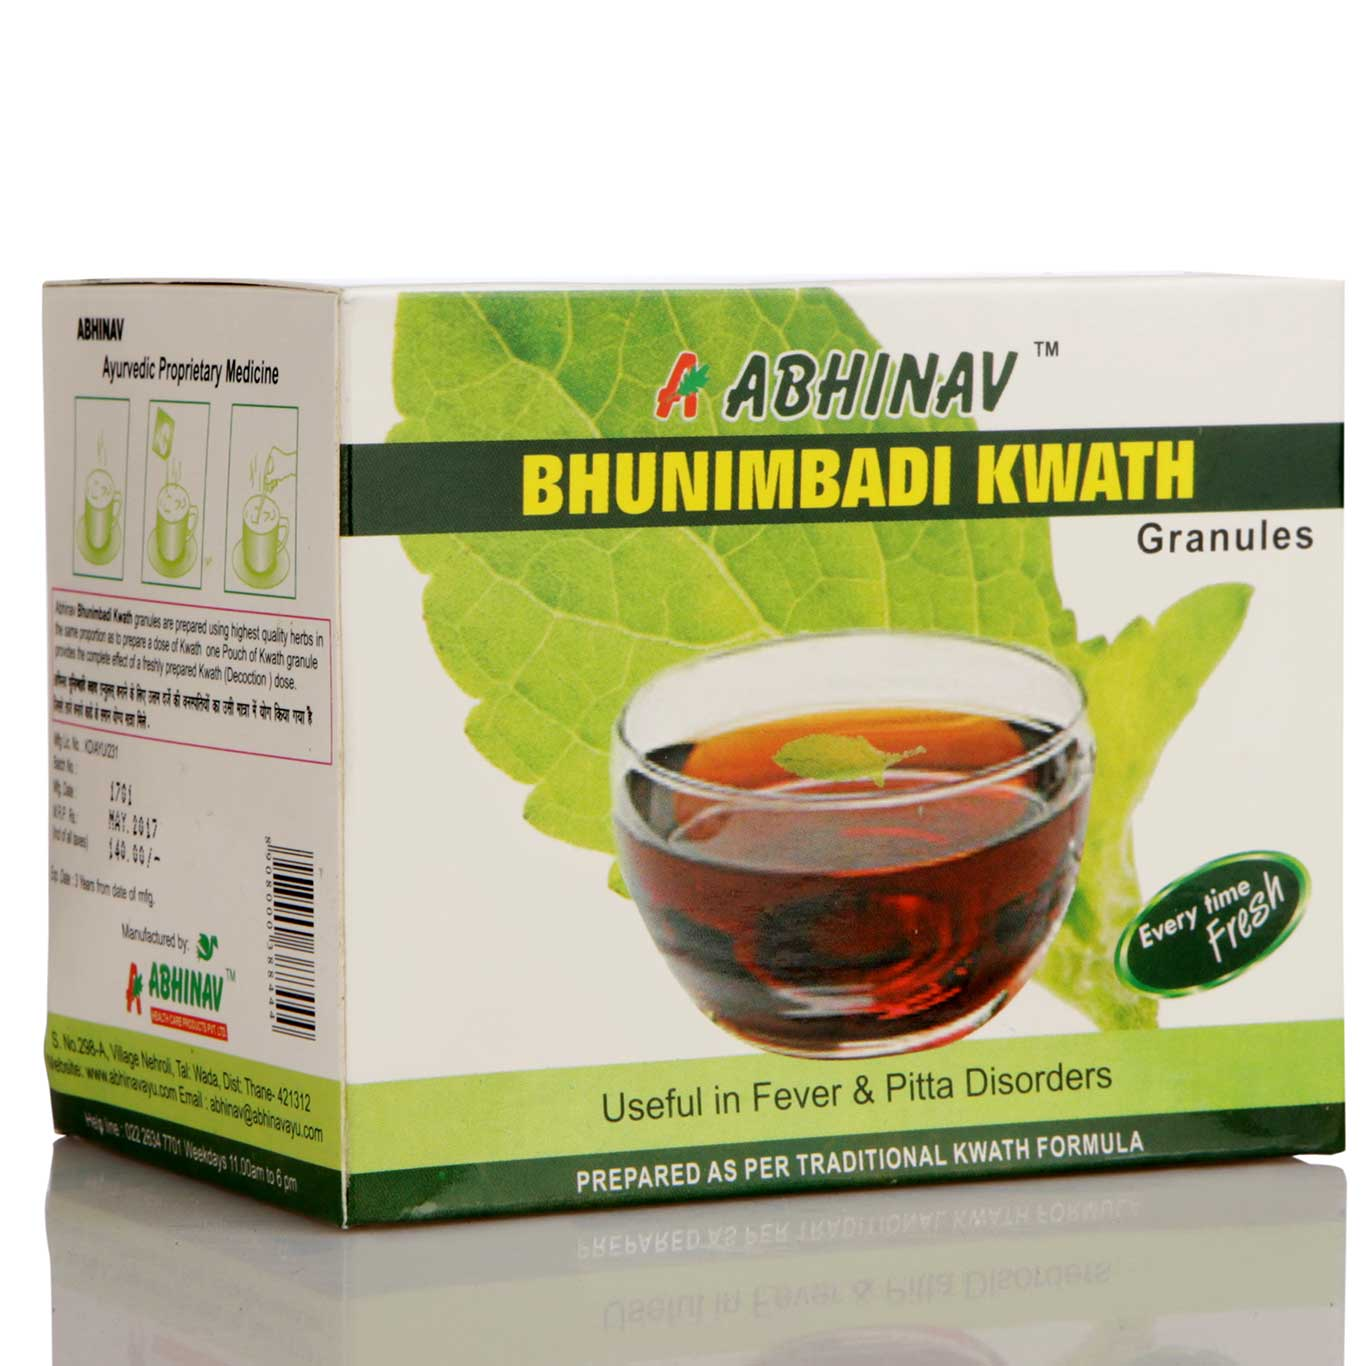 Bhunimbadi Kwath Granules in India